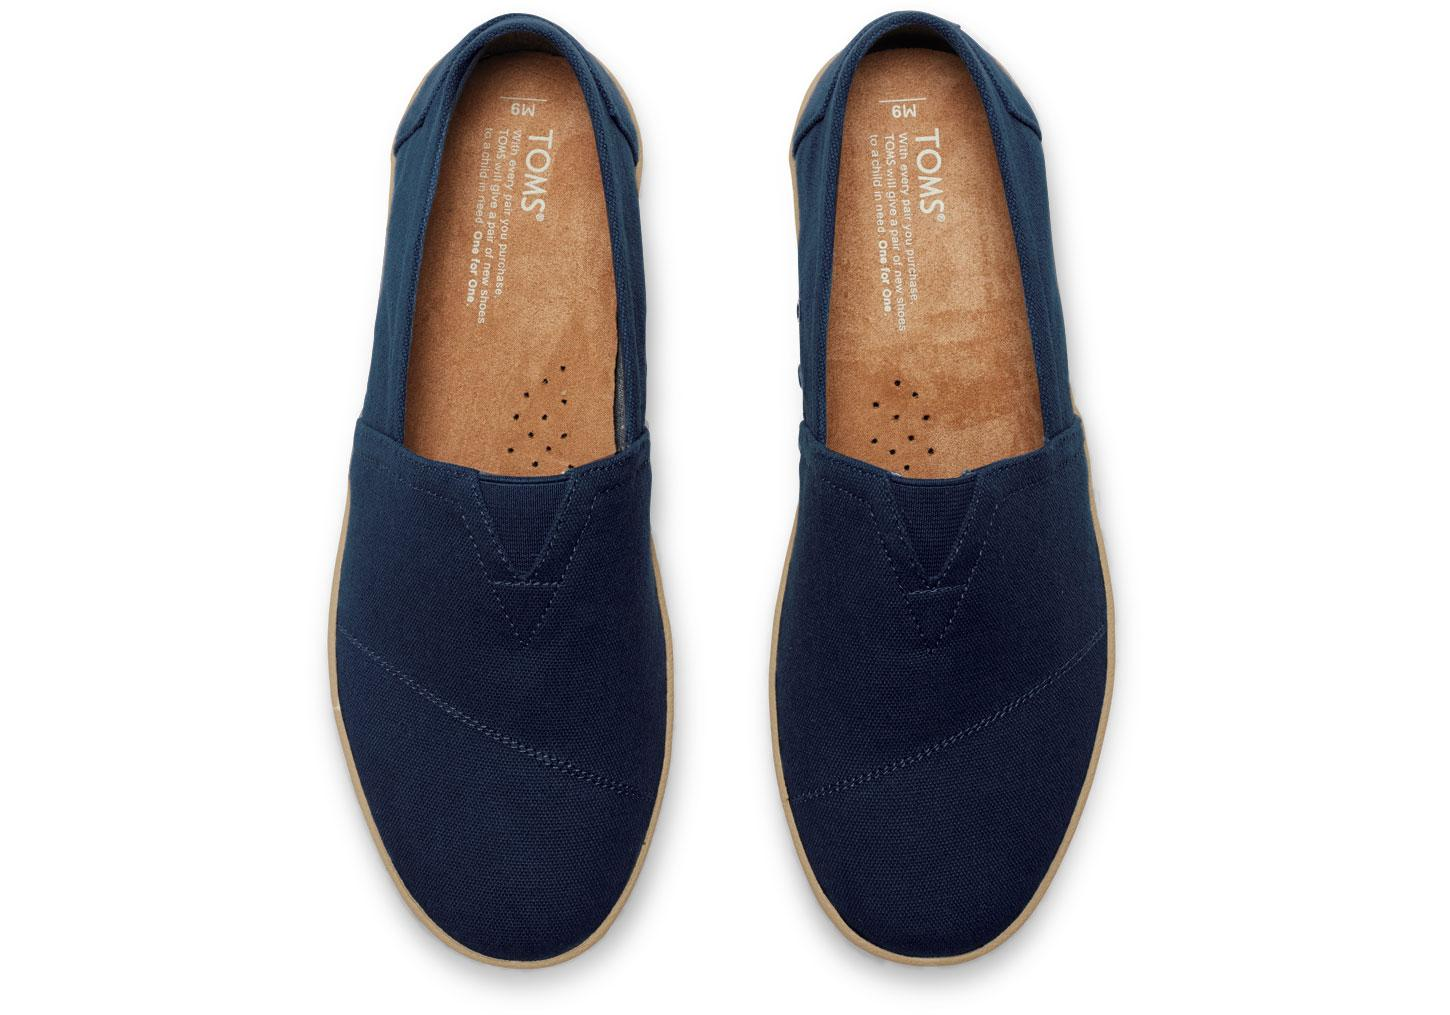 9ebbf9f1128 TOMS Navy Canvas Men s Avalon Slip-ons in Blue for Men - Lyst